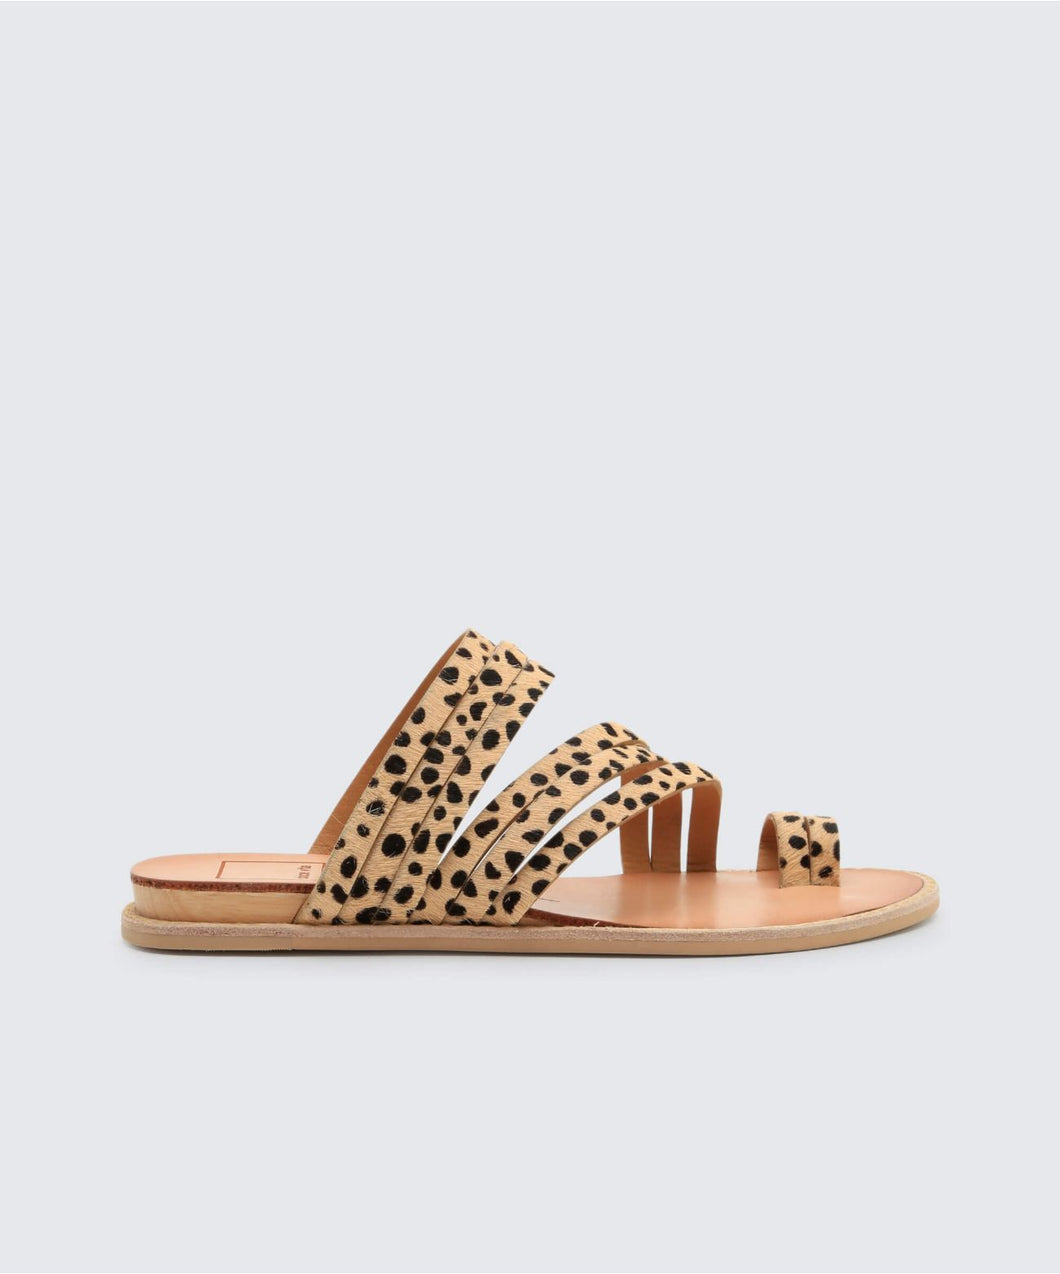 NELLY SANDALS LEOPARD -   Dolce Vita